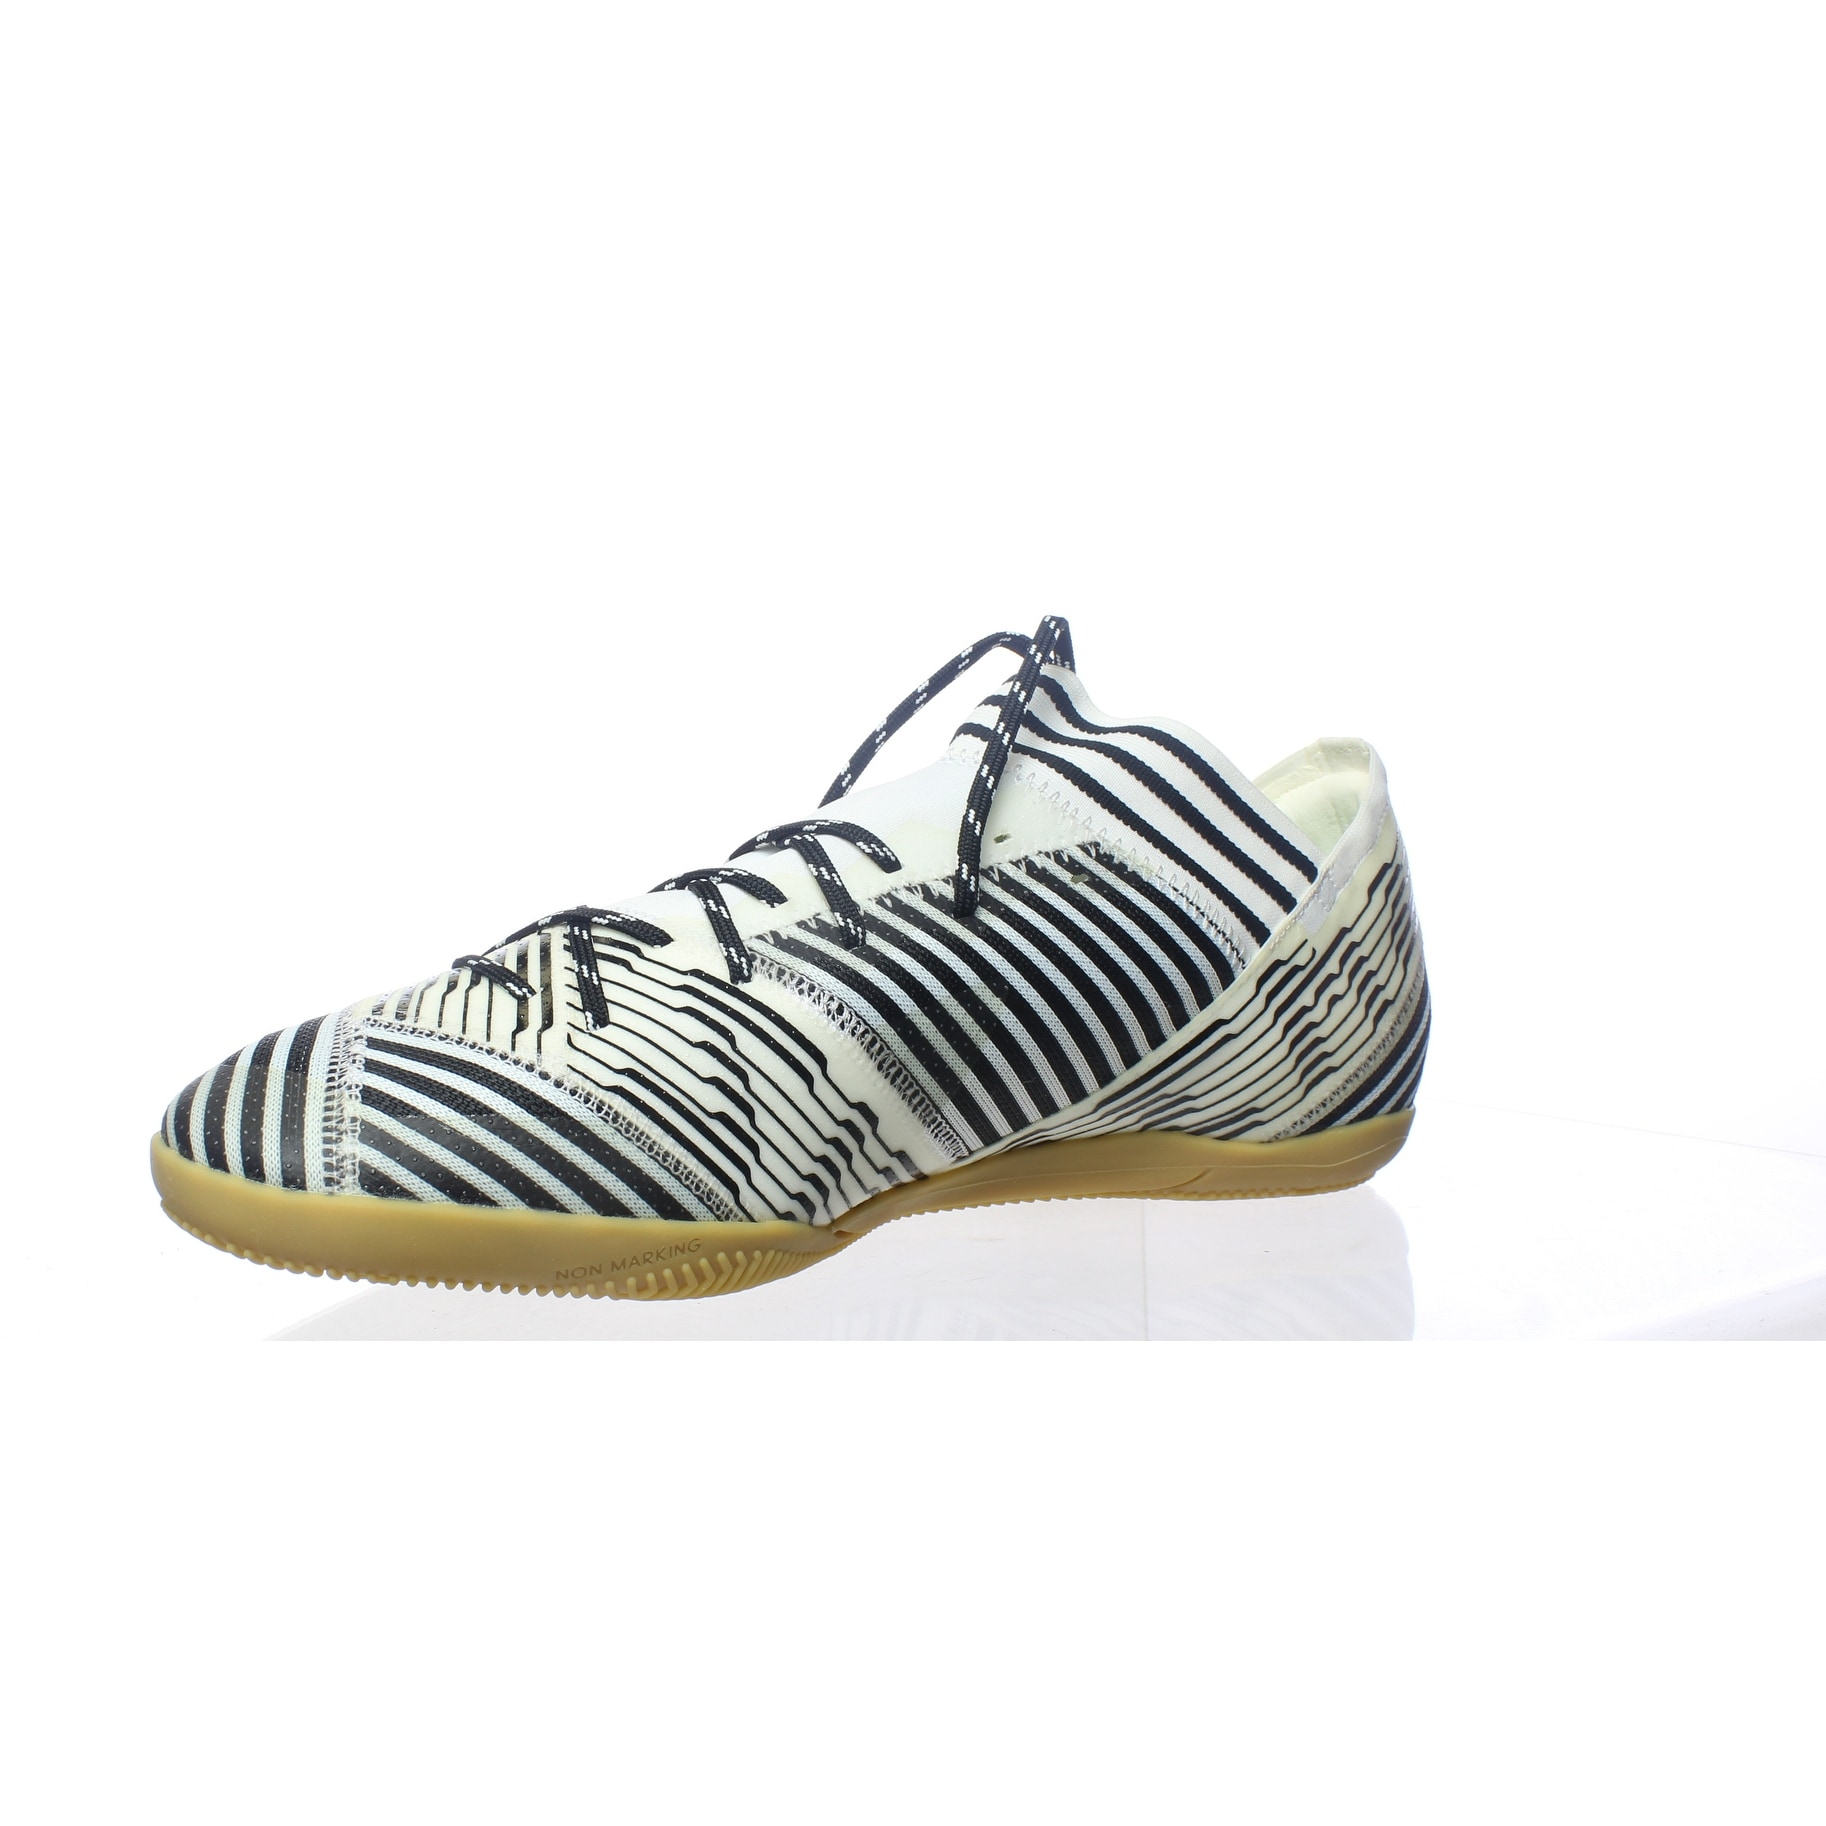 926fbdbbb09 Shop Adidas Mens Nemeziz White Indoor Soccer Shoes Size 12 - Free Shipping  Today - Overstock - 27993450